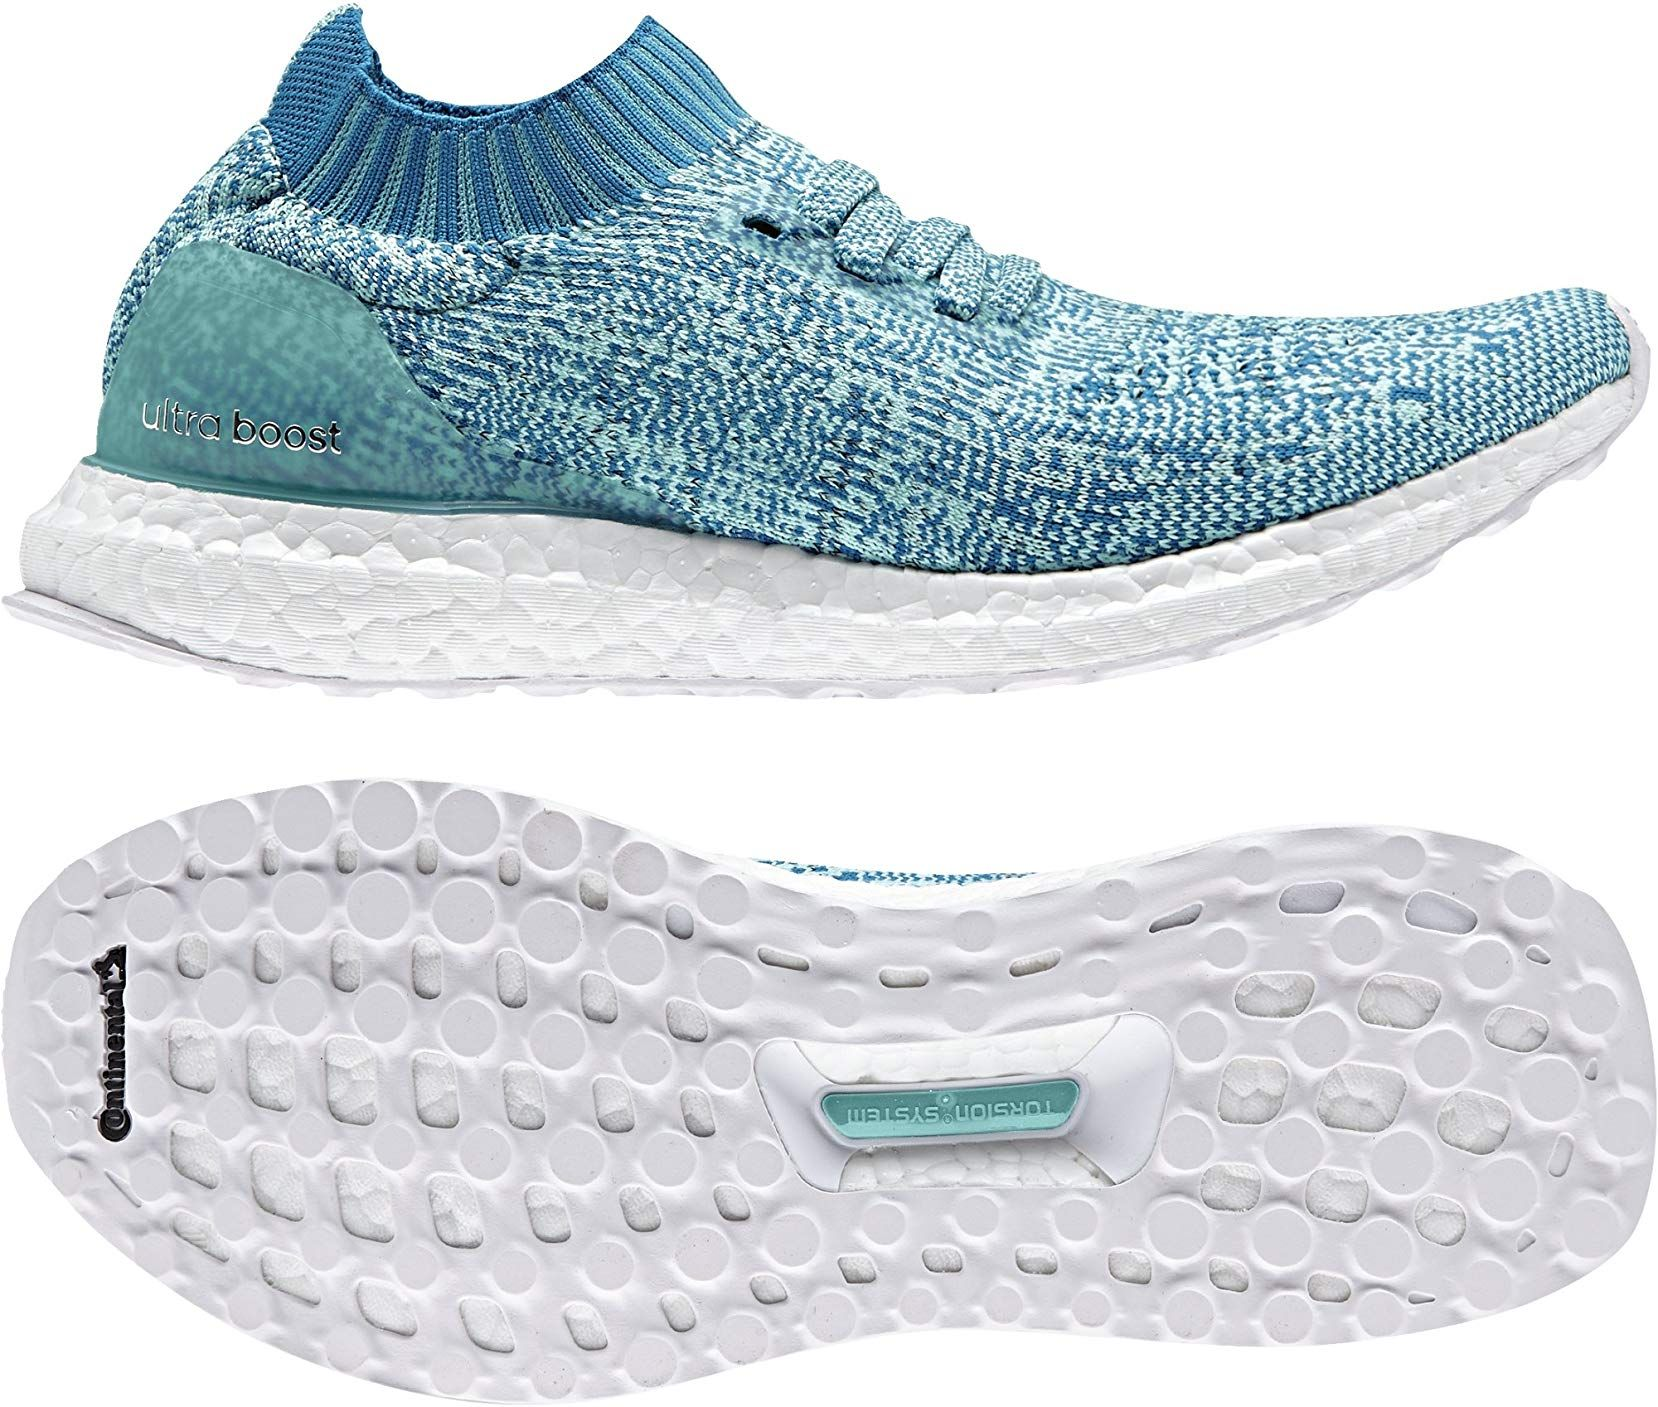 f0e7366c895f0 adidas Ultraboost Uncaged - US 9.5W  Amazon  Fashion  Adidas  Yeezy   UltraBOOST  Shoes  Trending DesignerShoes  SportsShoes  Activewear   Sneakers  Footwear ...